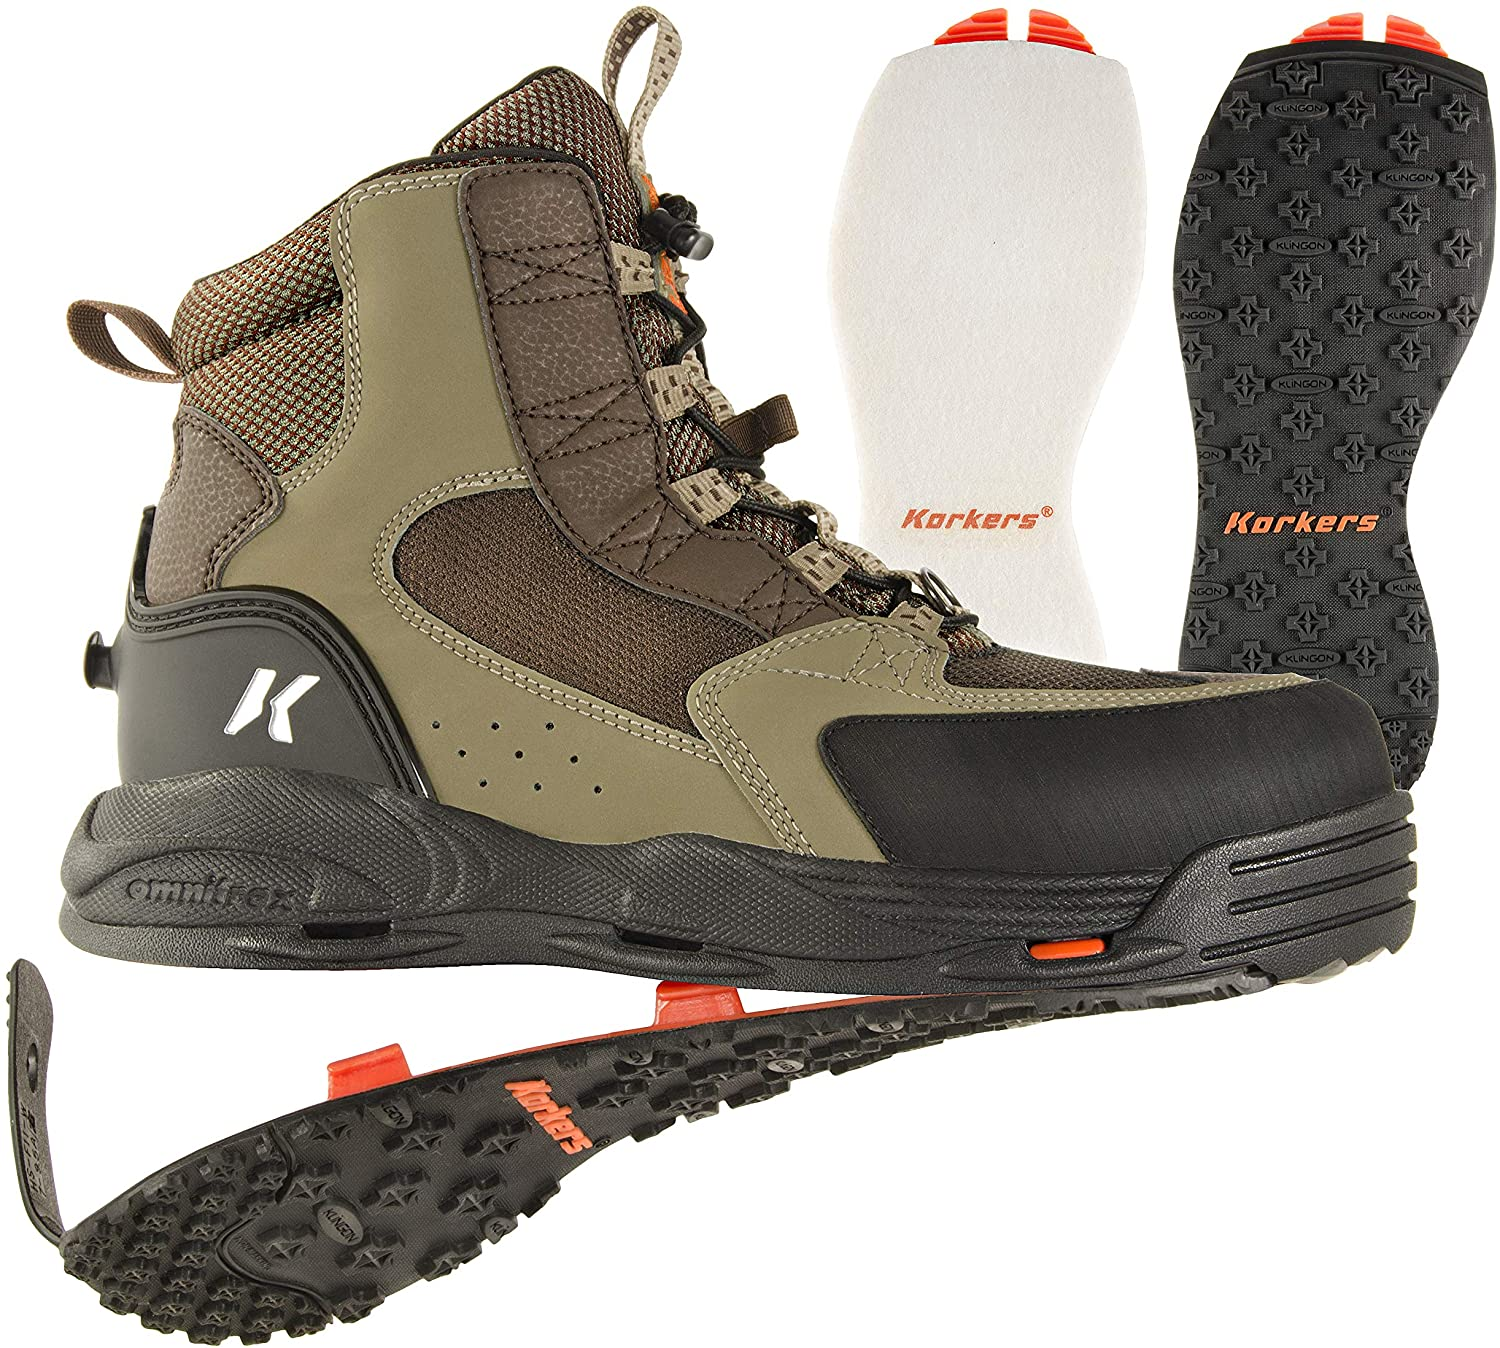 Korkers Lightweight Wading Boots for Fishing